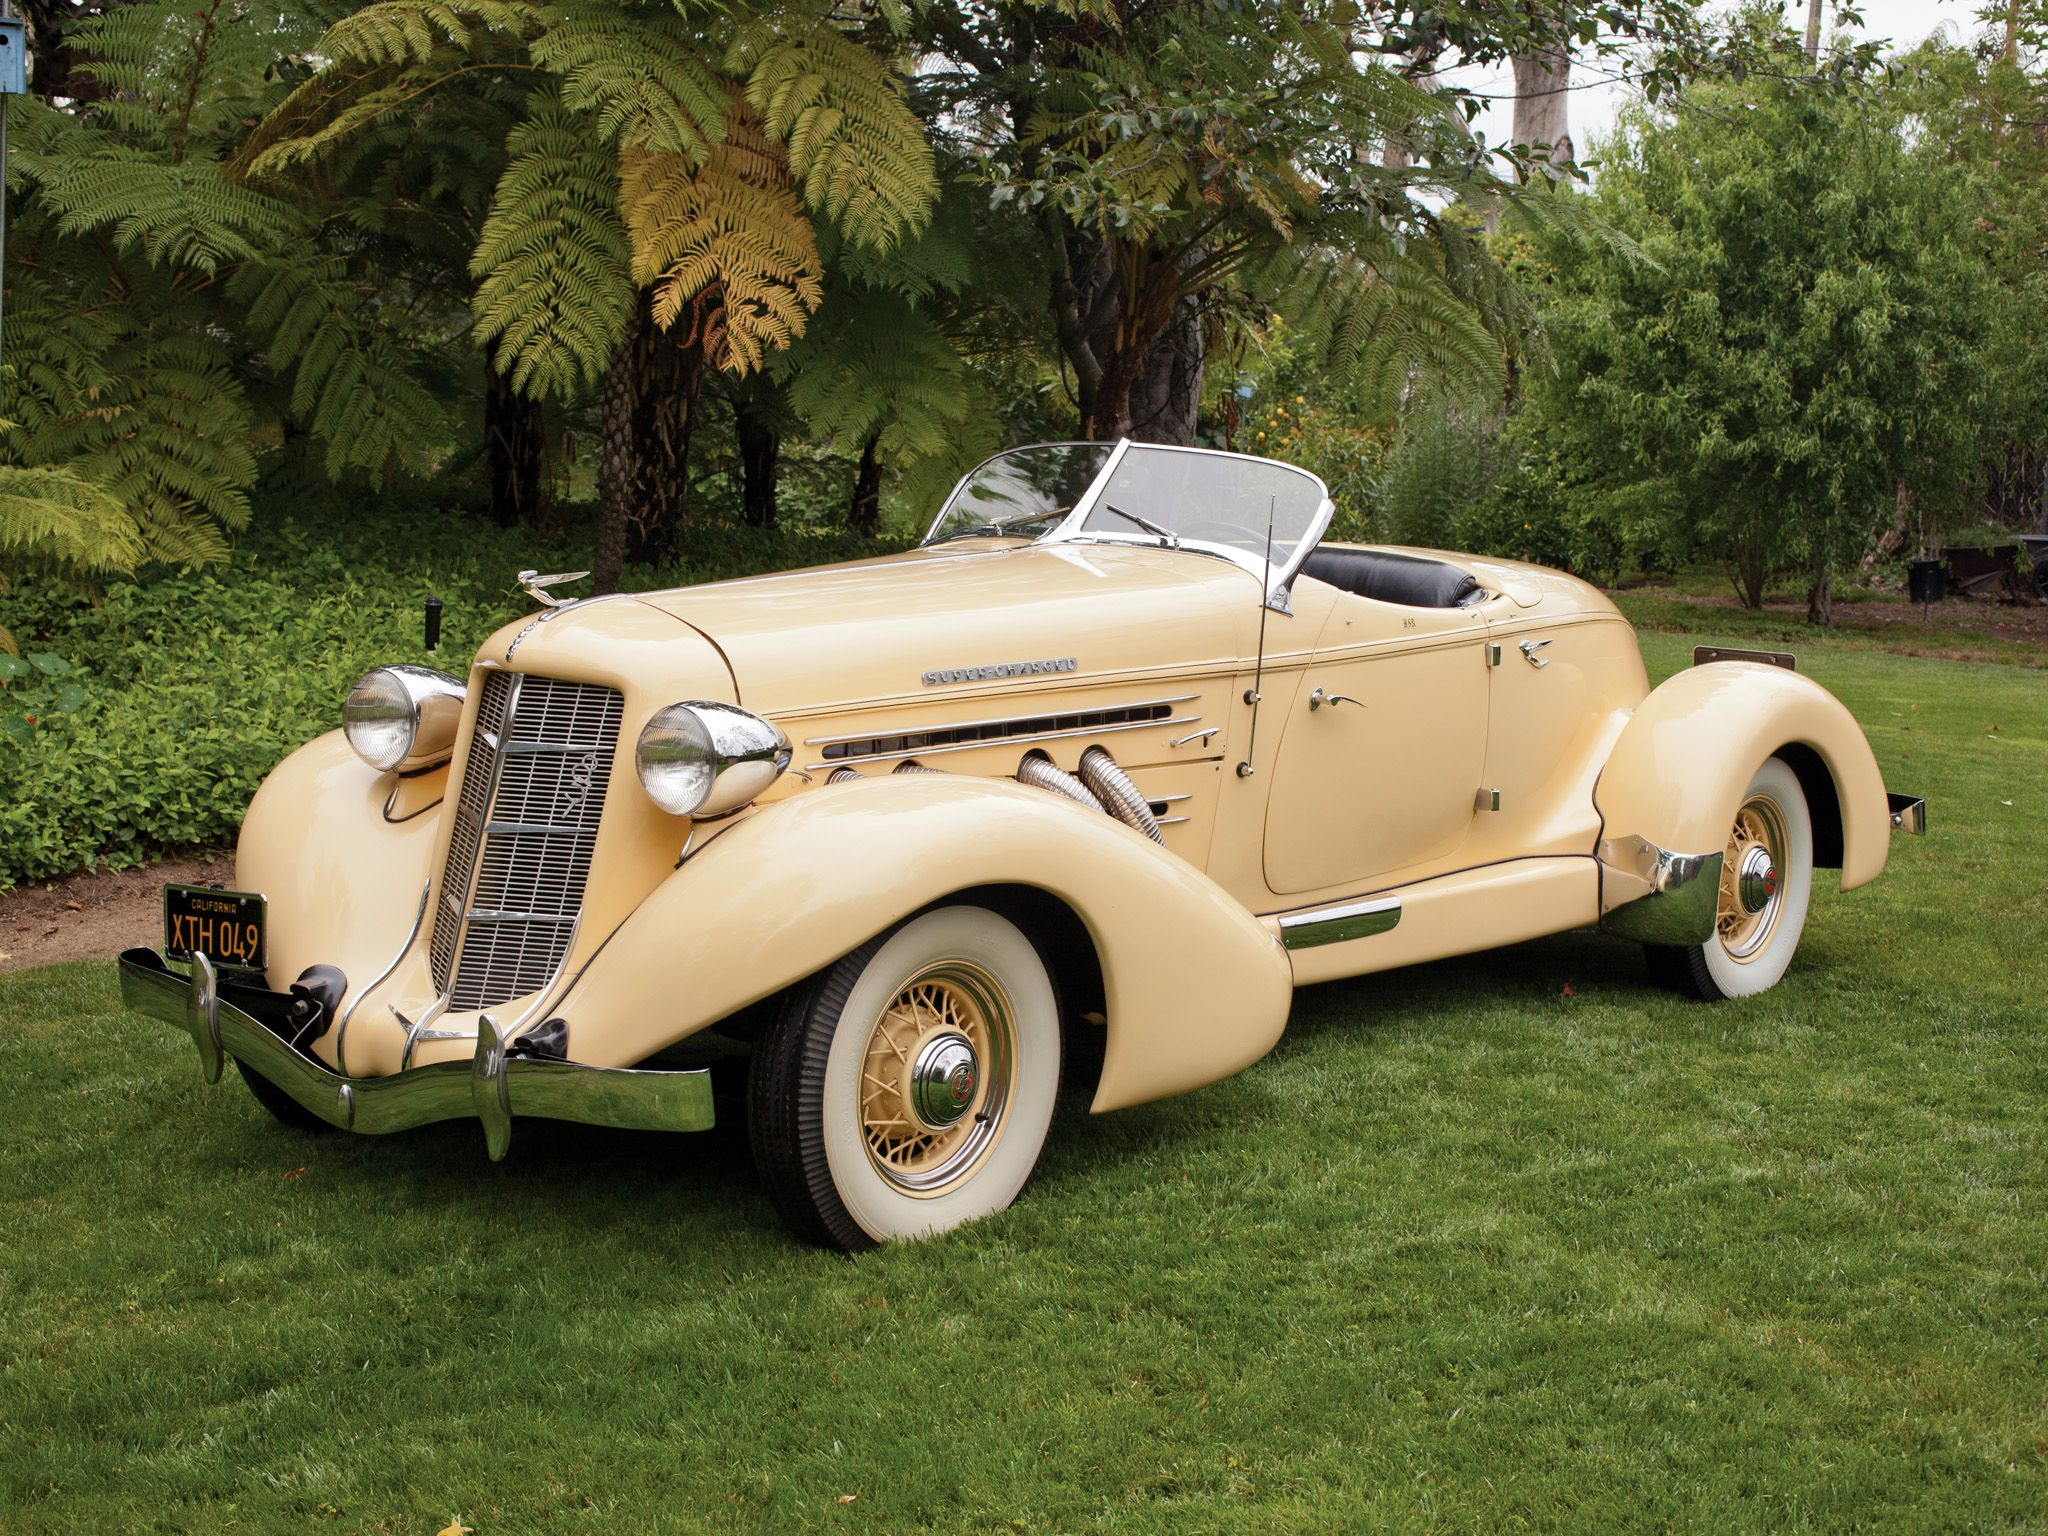 1935 Auburn 851 S-C Boattail Speedster | Classic Cars of the 20th ...